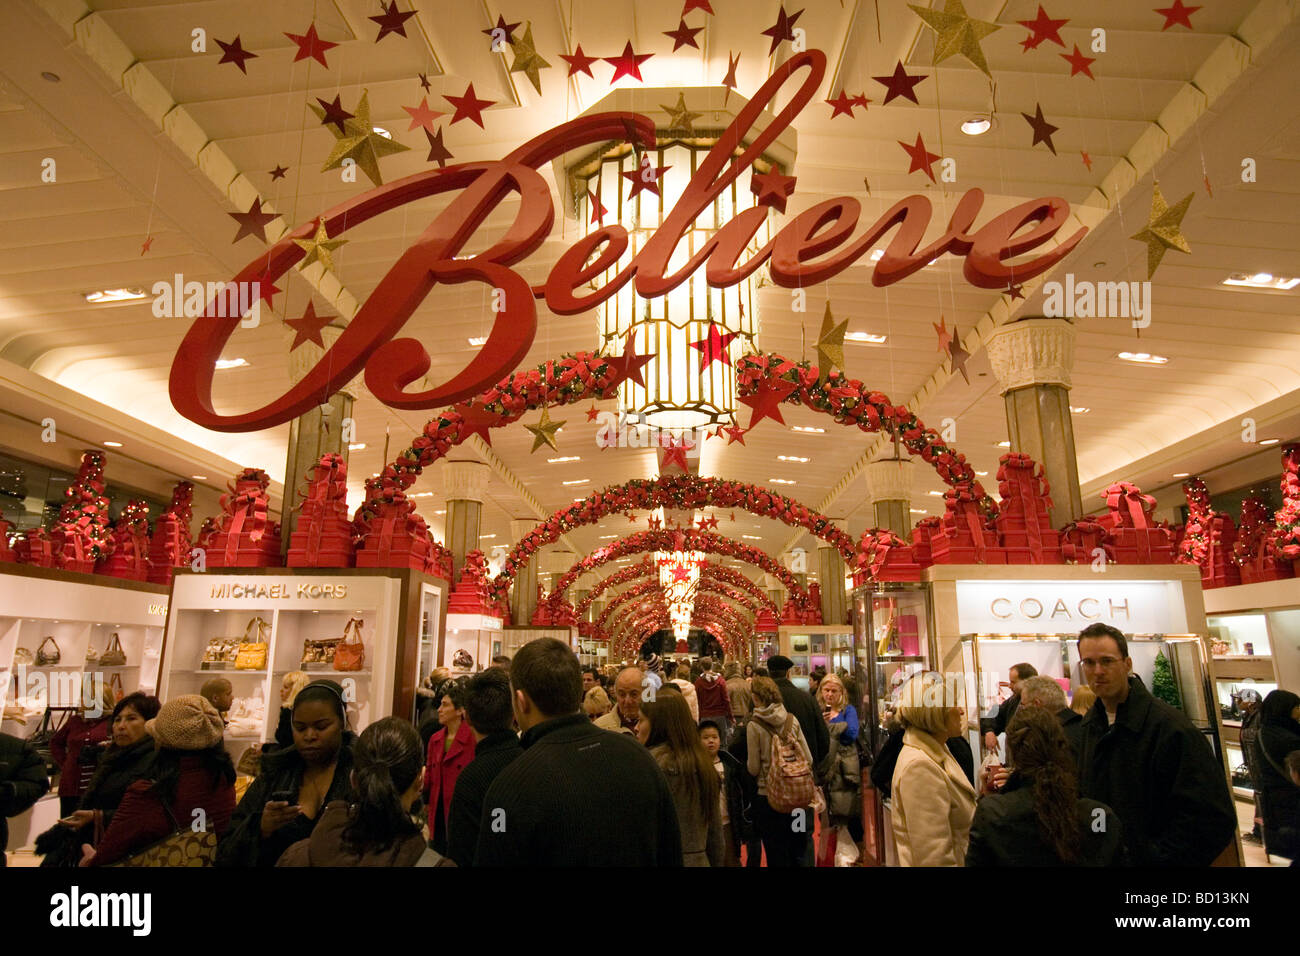 Believe Christmas sign in Macy s in Herald Square in New York City ...